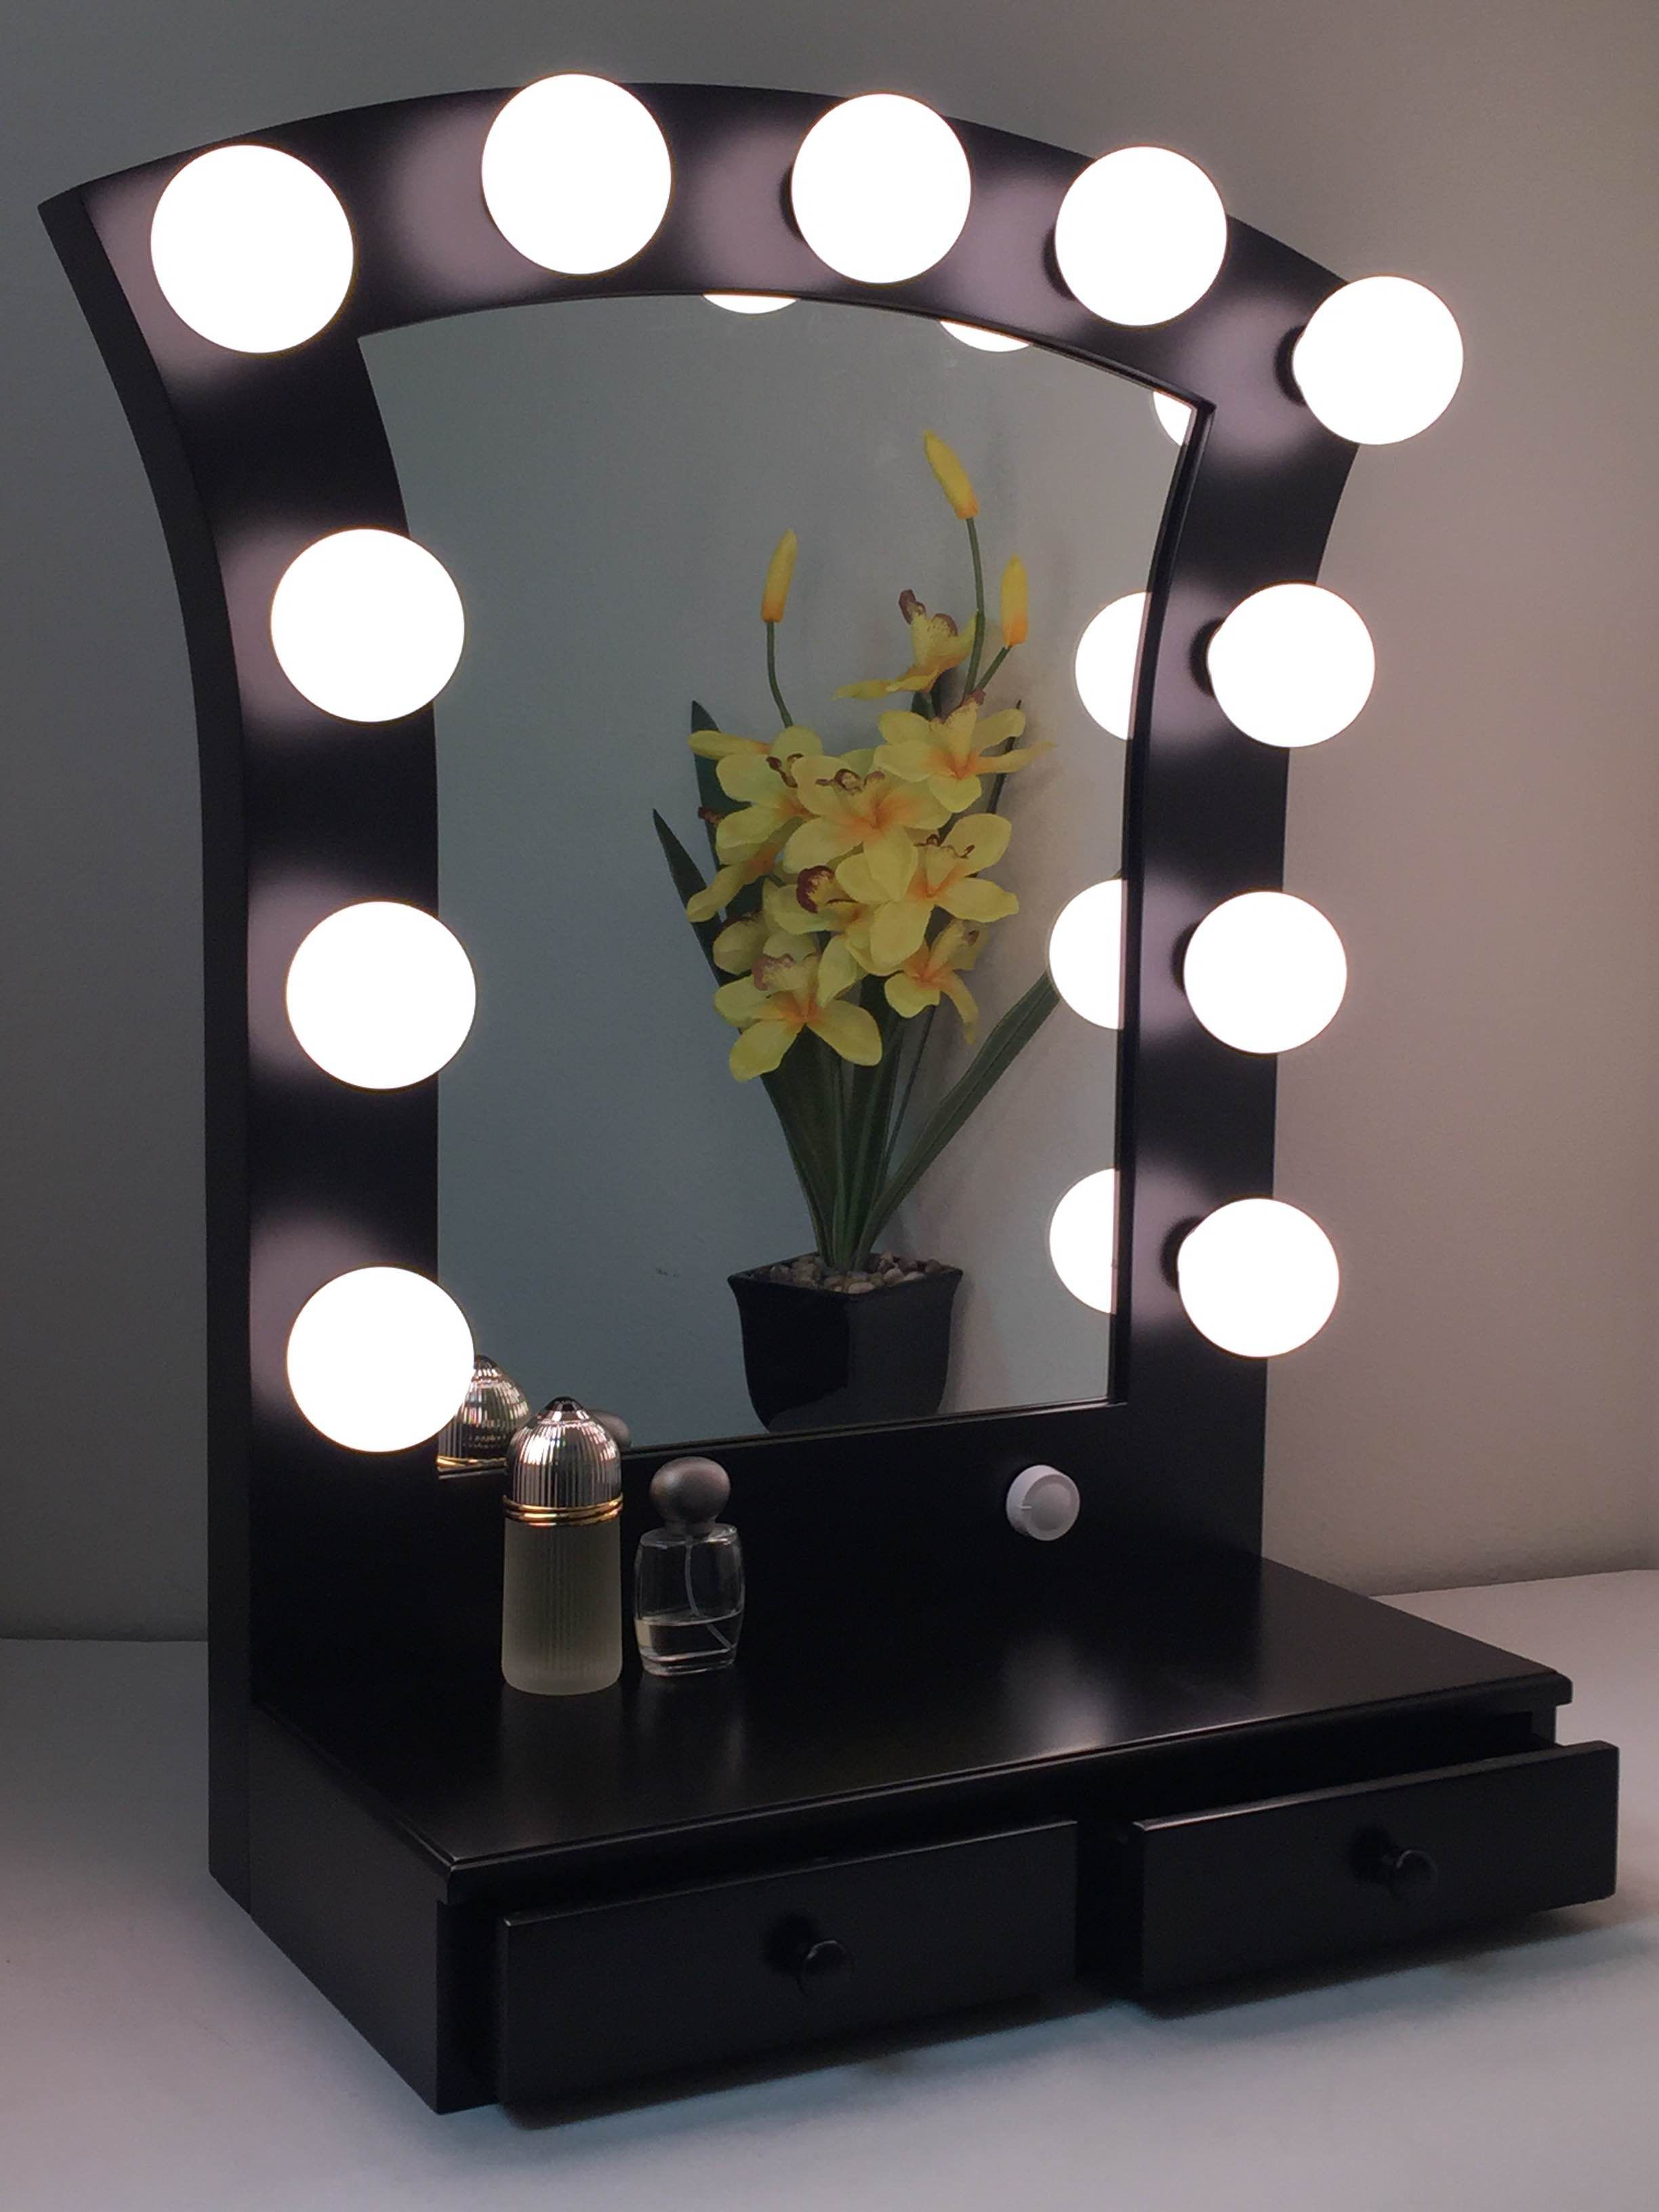 light cabinet vanity with ideas uk cosmetic led bulbs foxhunter us powered under home mirror best oksunglassesn lighting battery design lights makeup beauty